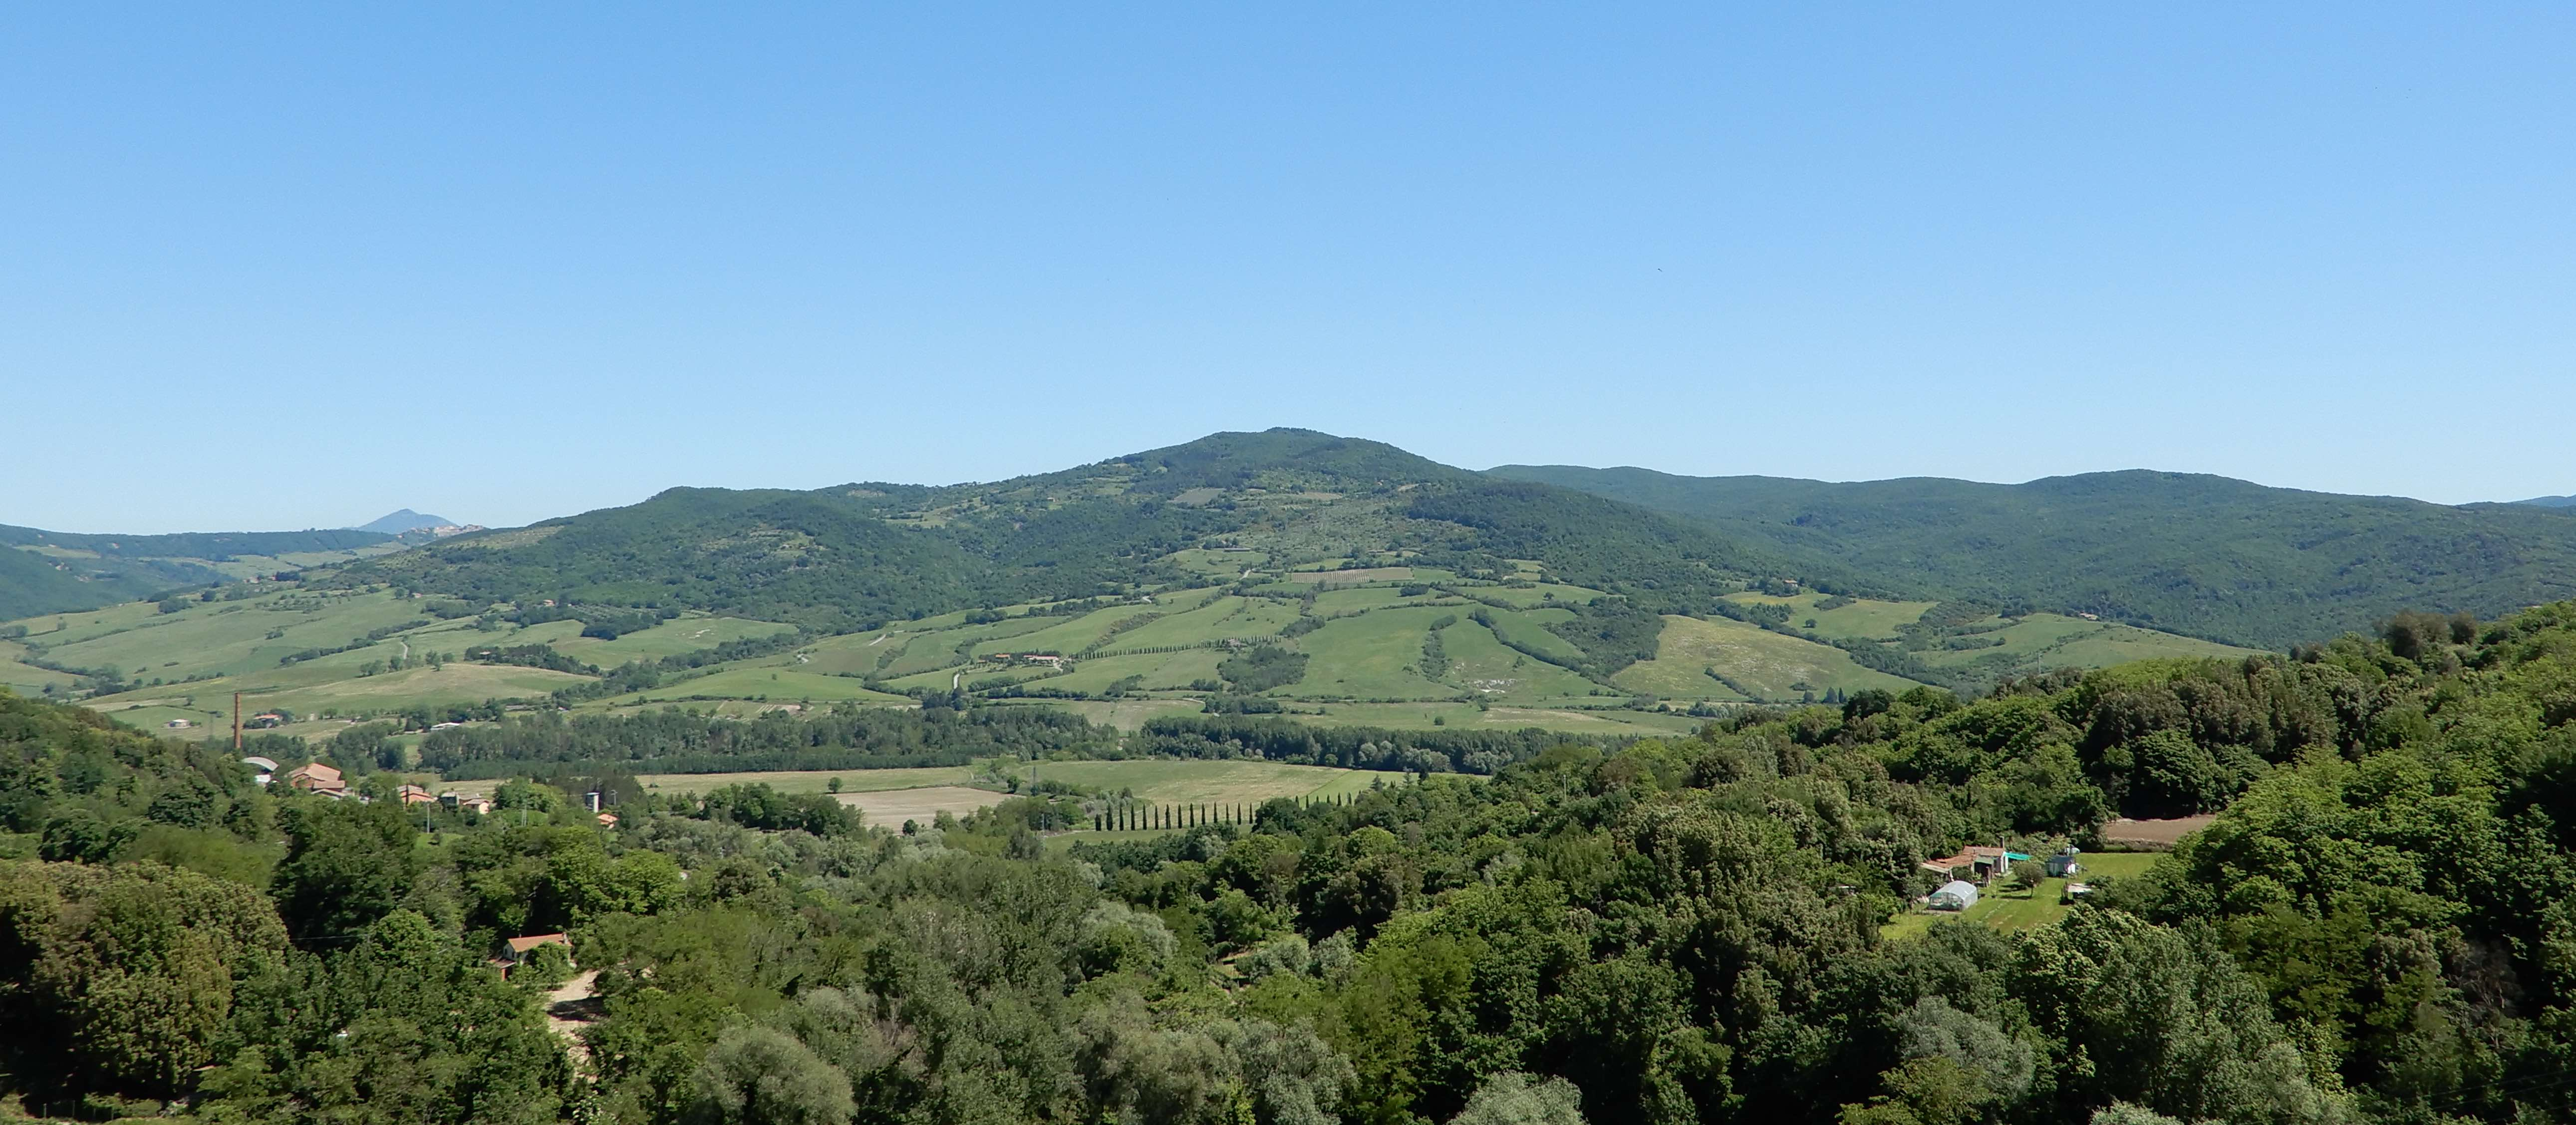 86.view